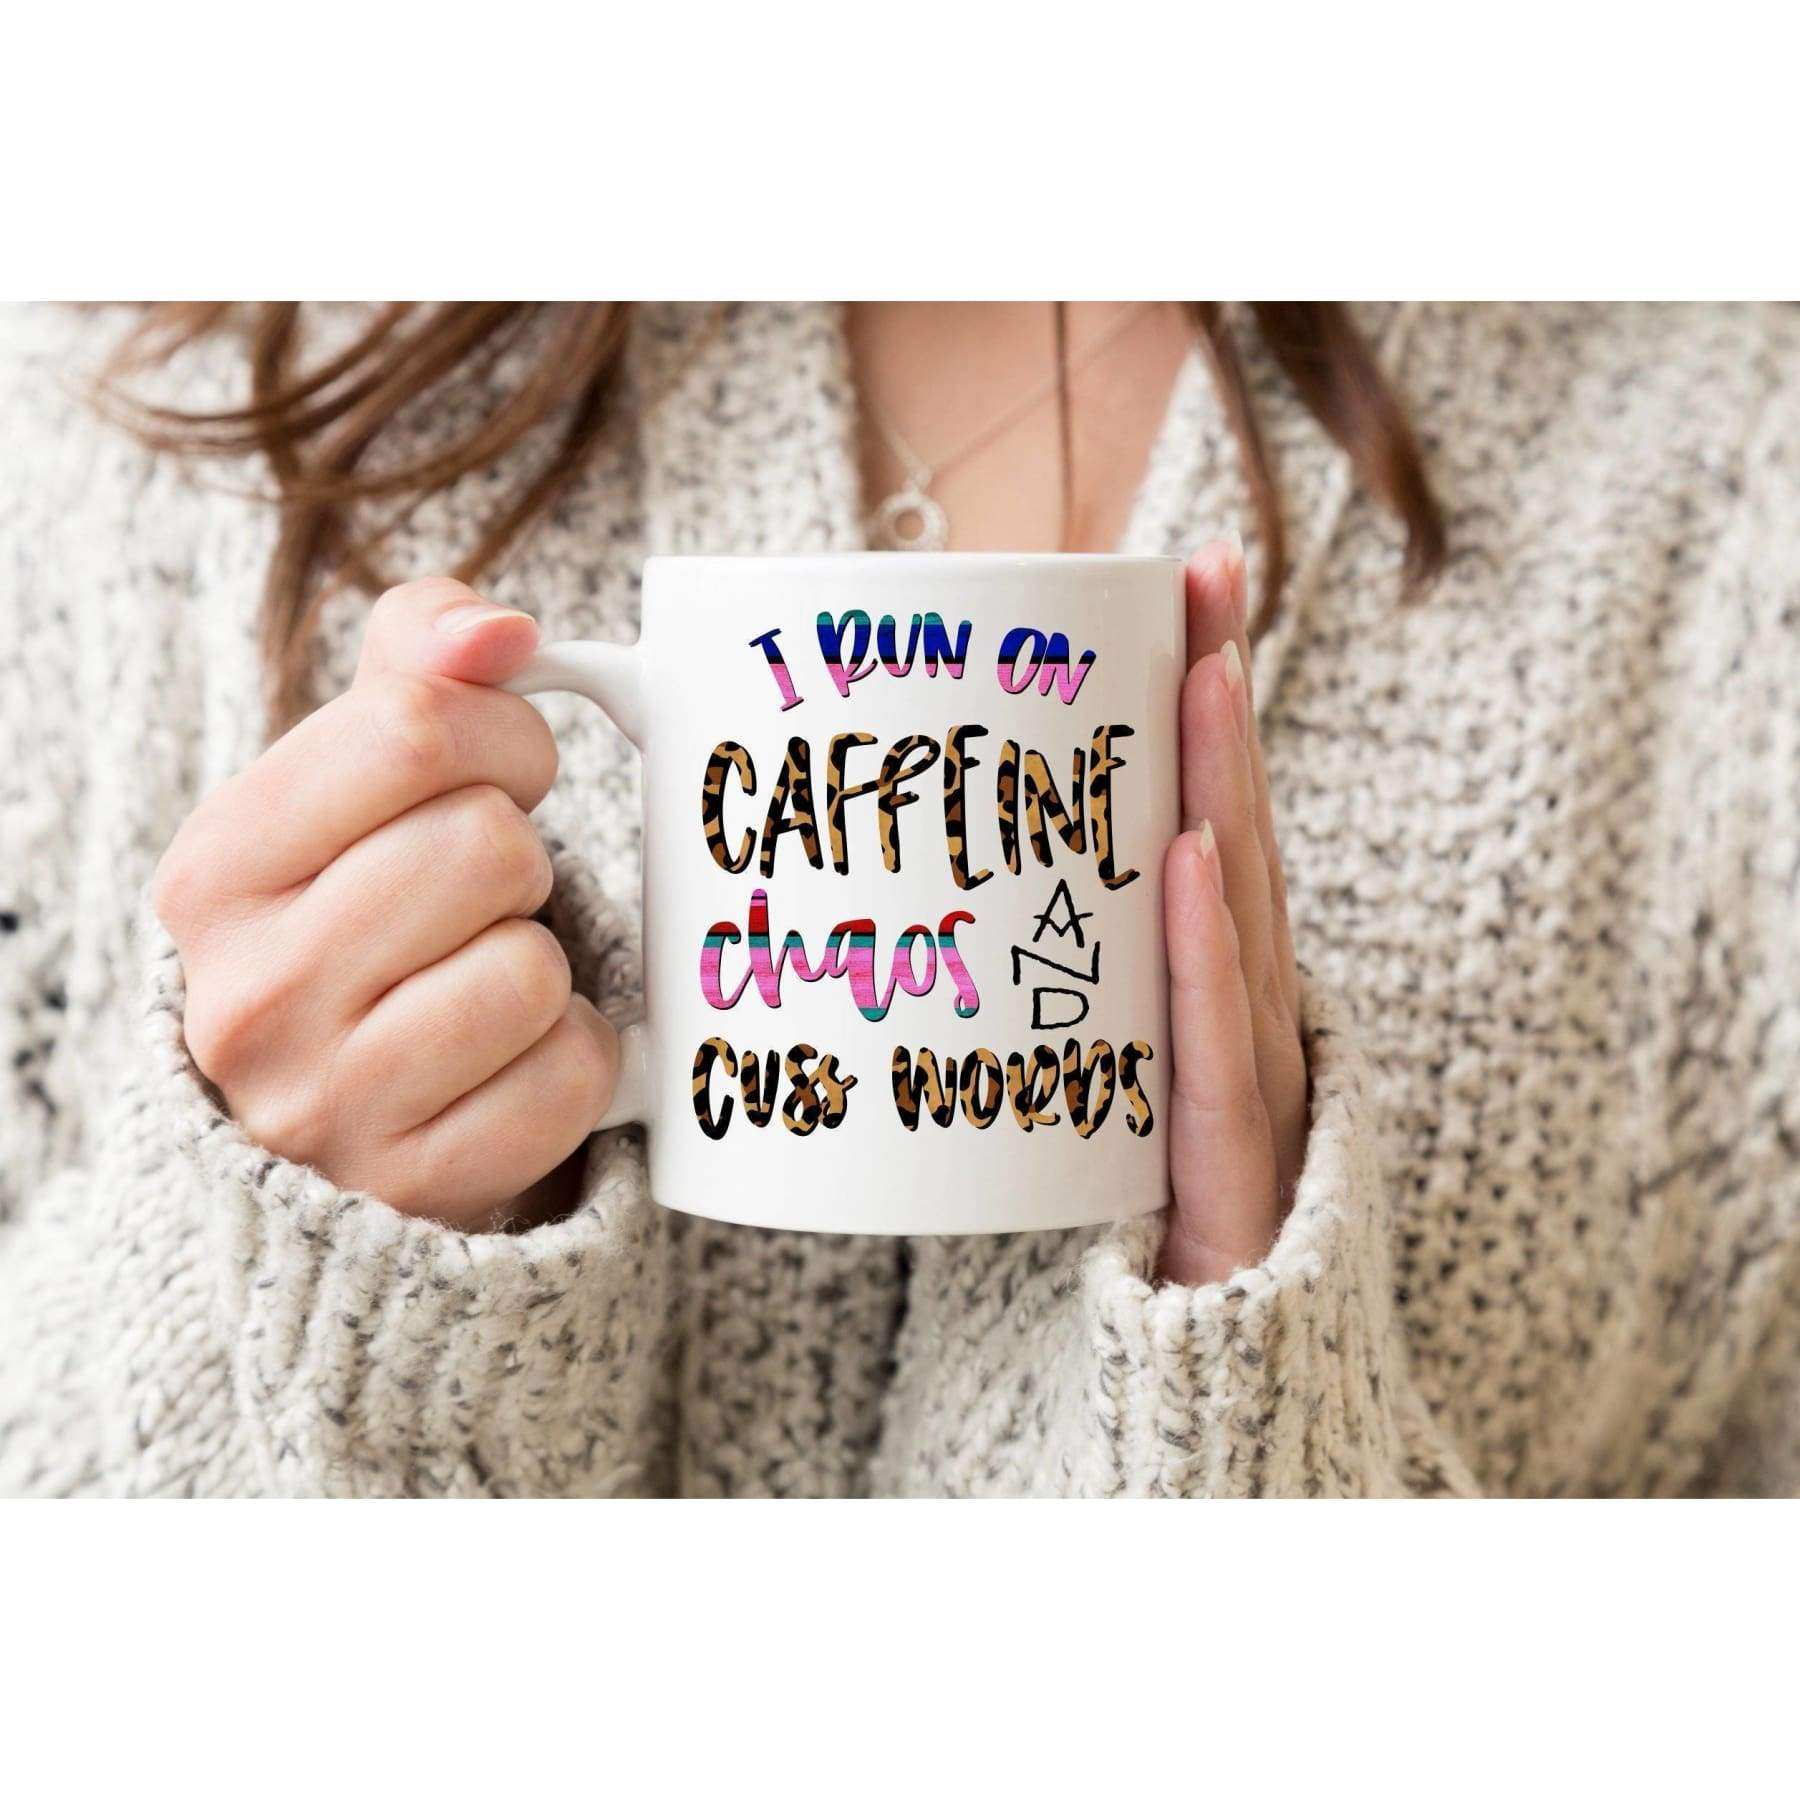 Rude Mugs - I Run on Chaos, Caffeine Cuss Words, Coffee Mug.